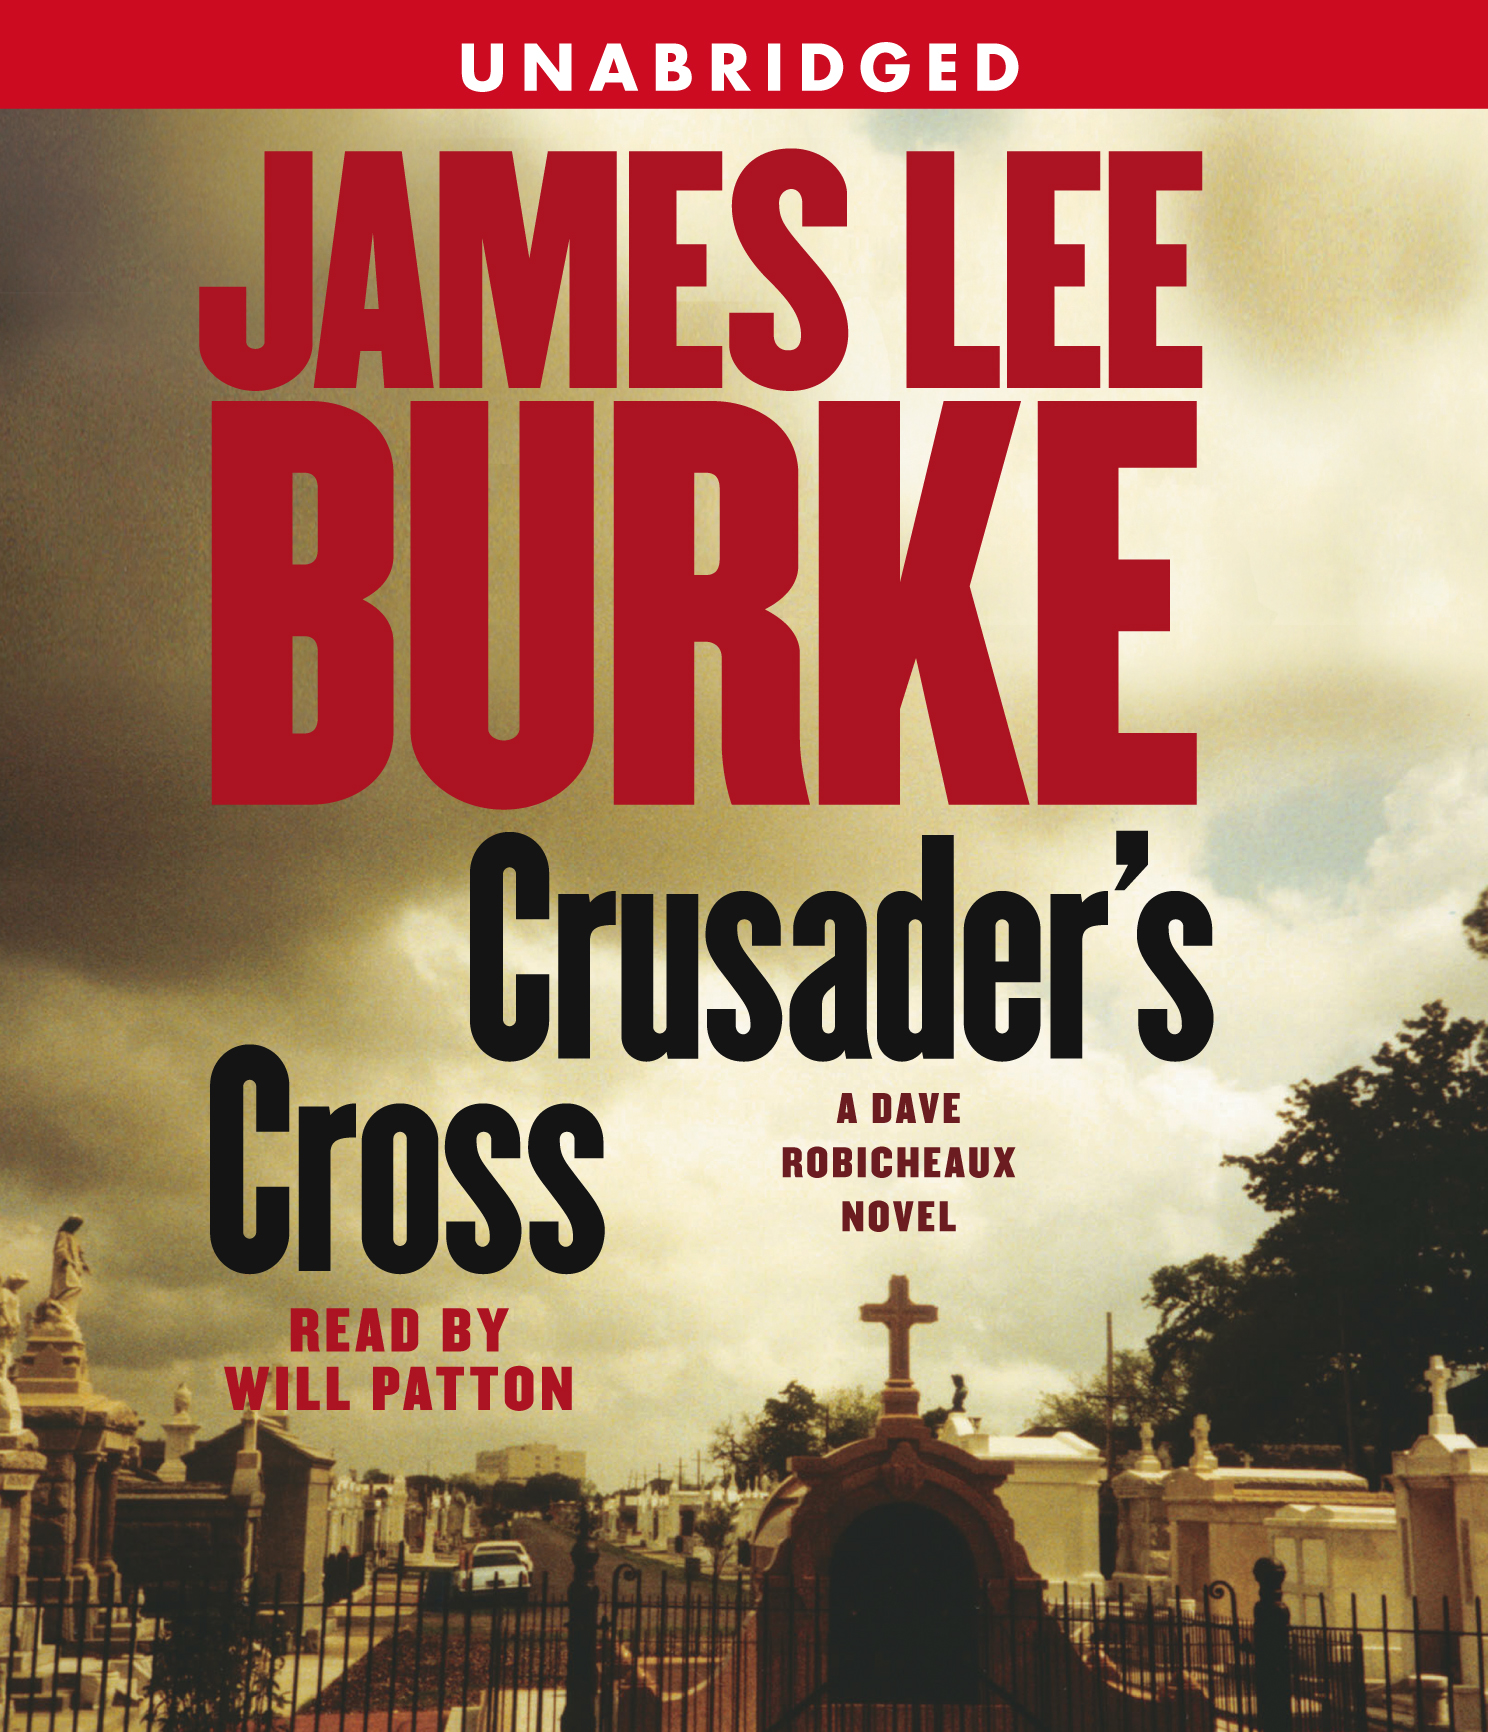 Book Cover Image (jpg): Crusader's Cross